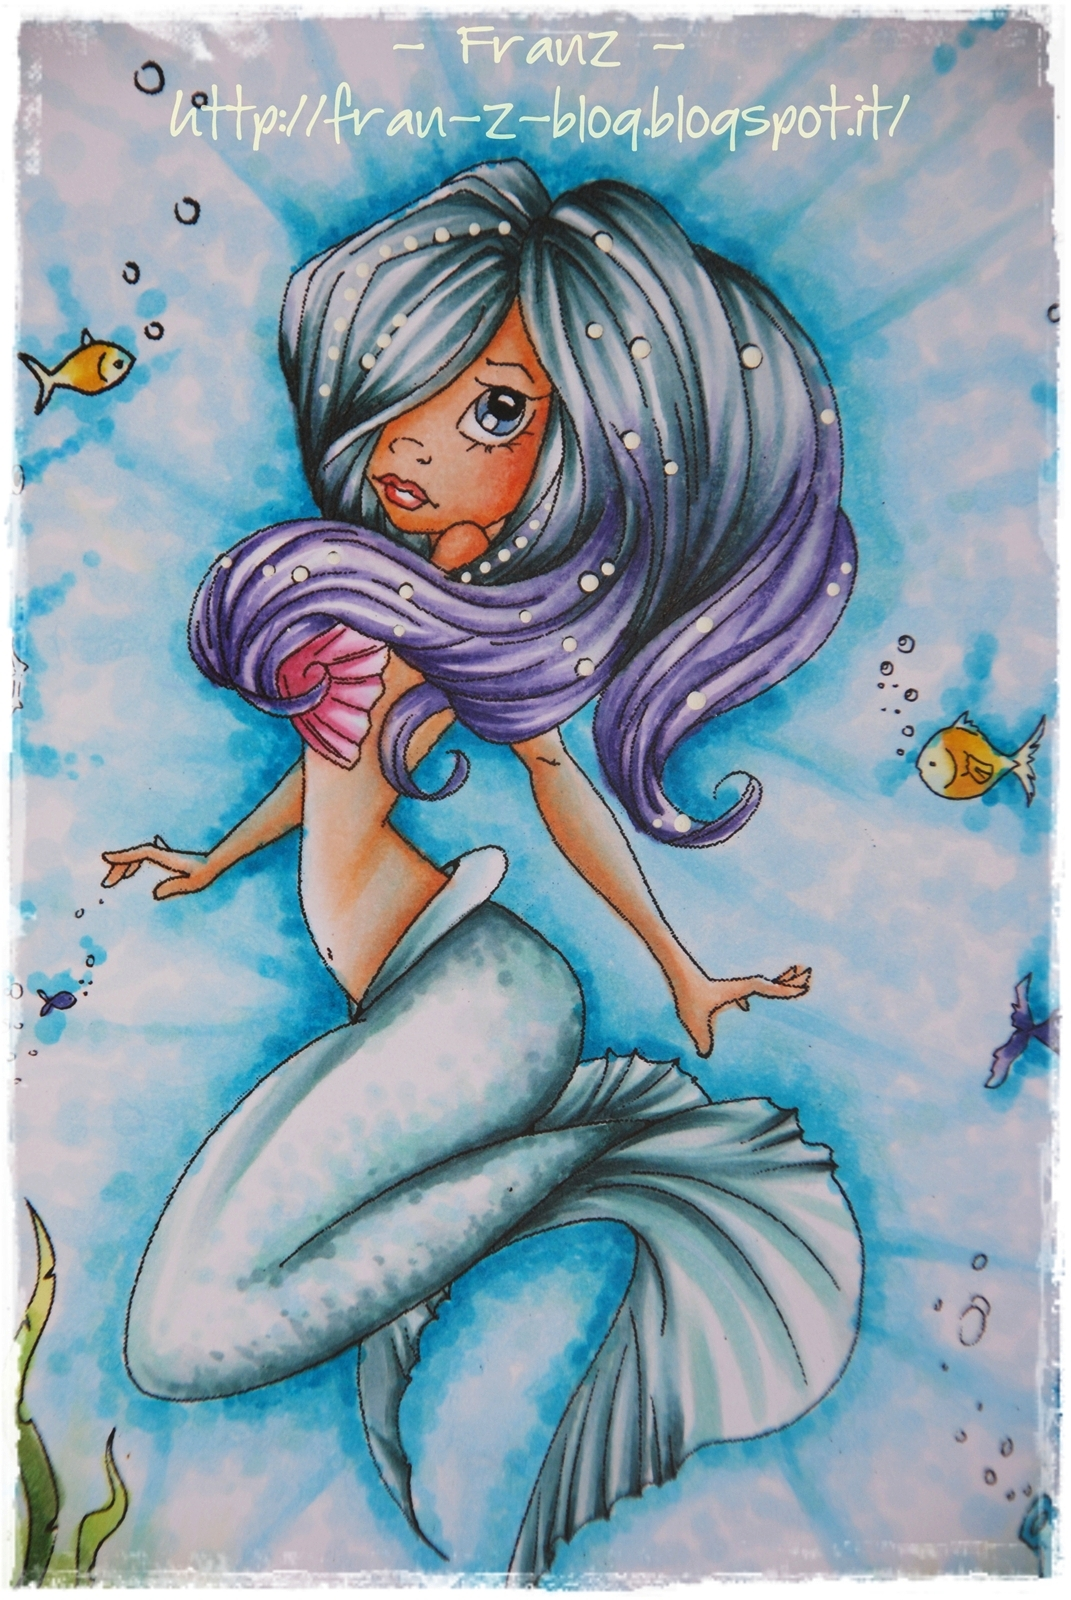 Copic Marker Europe: Pearl the mermaid from Saturated